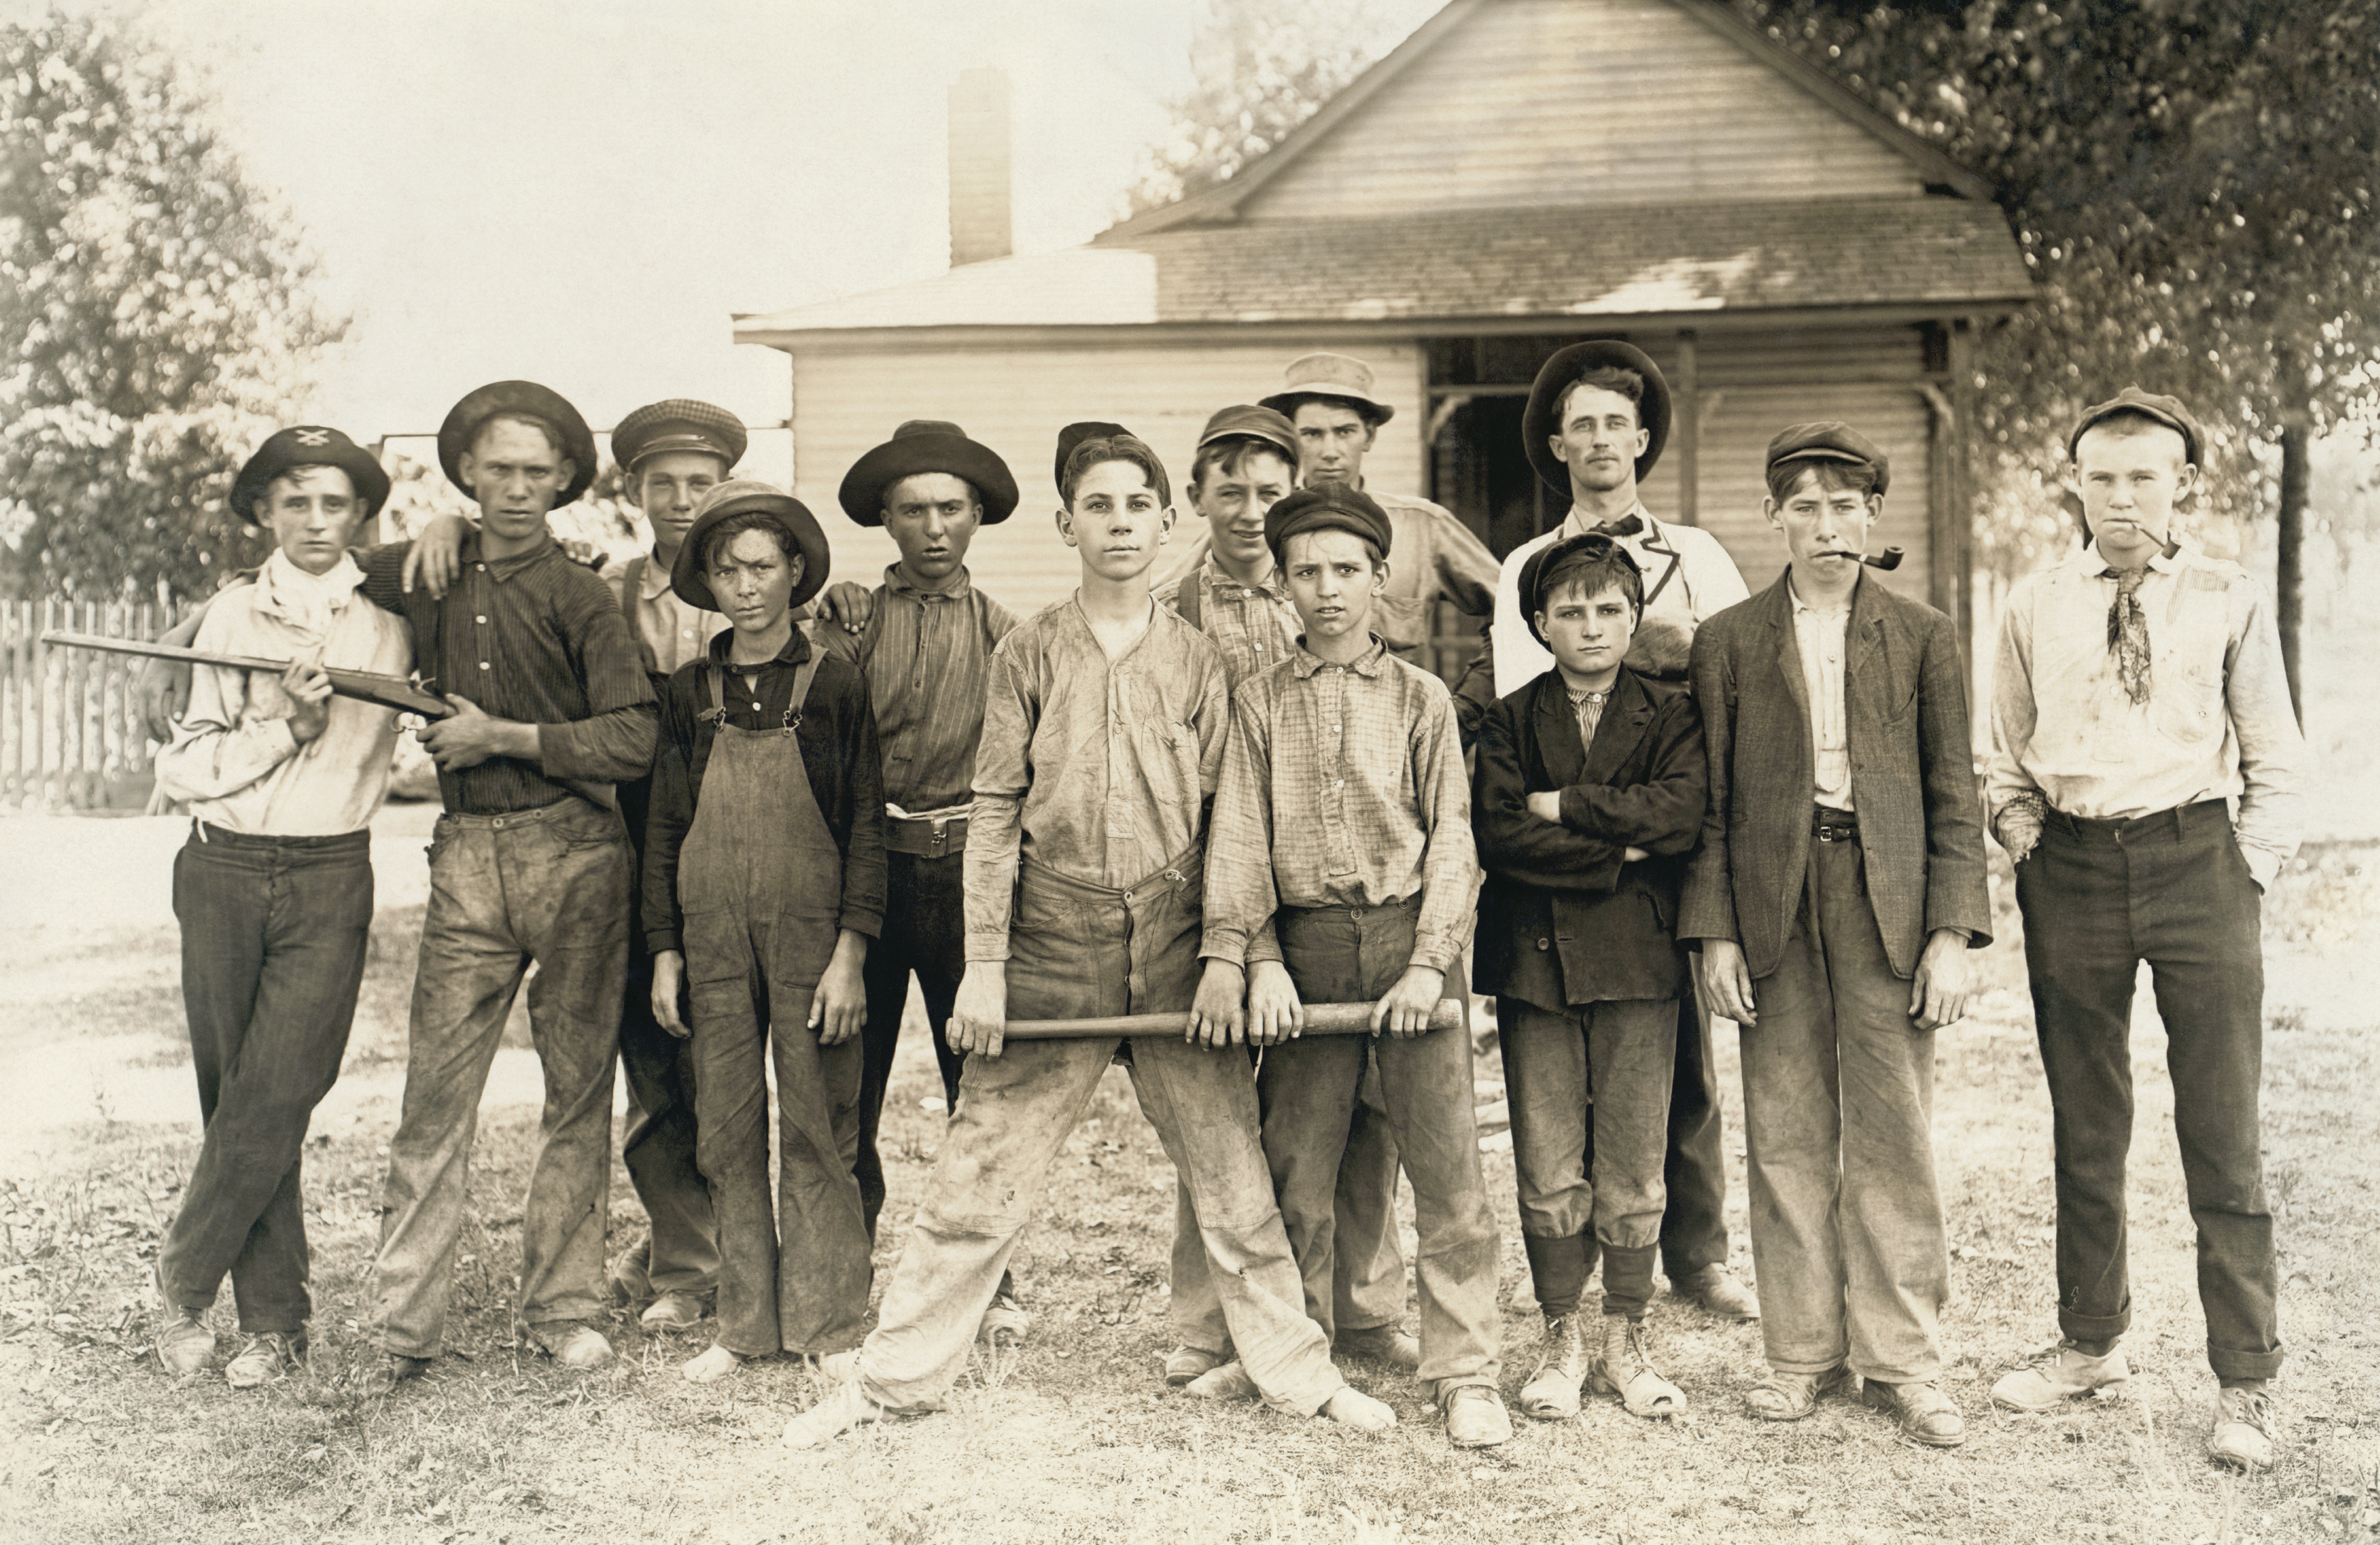 Baseball Teamposed Mostly Of Child Workers From A Glass Factory  Photograph By Lewis Hine, 1908